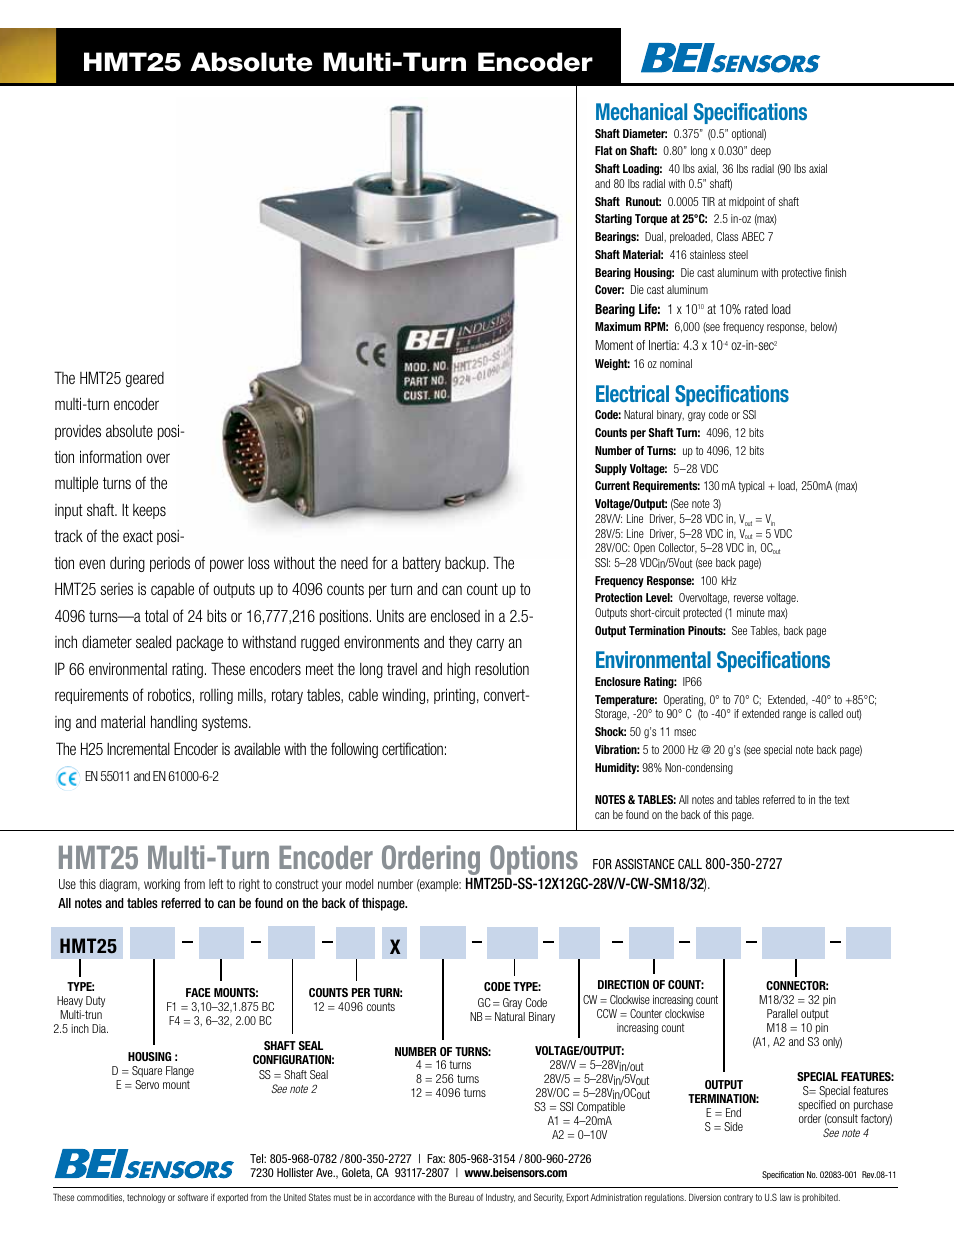 BEI Sensors HMT25 Absolute Multi-Turn Encoder User Manual | 2 pages